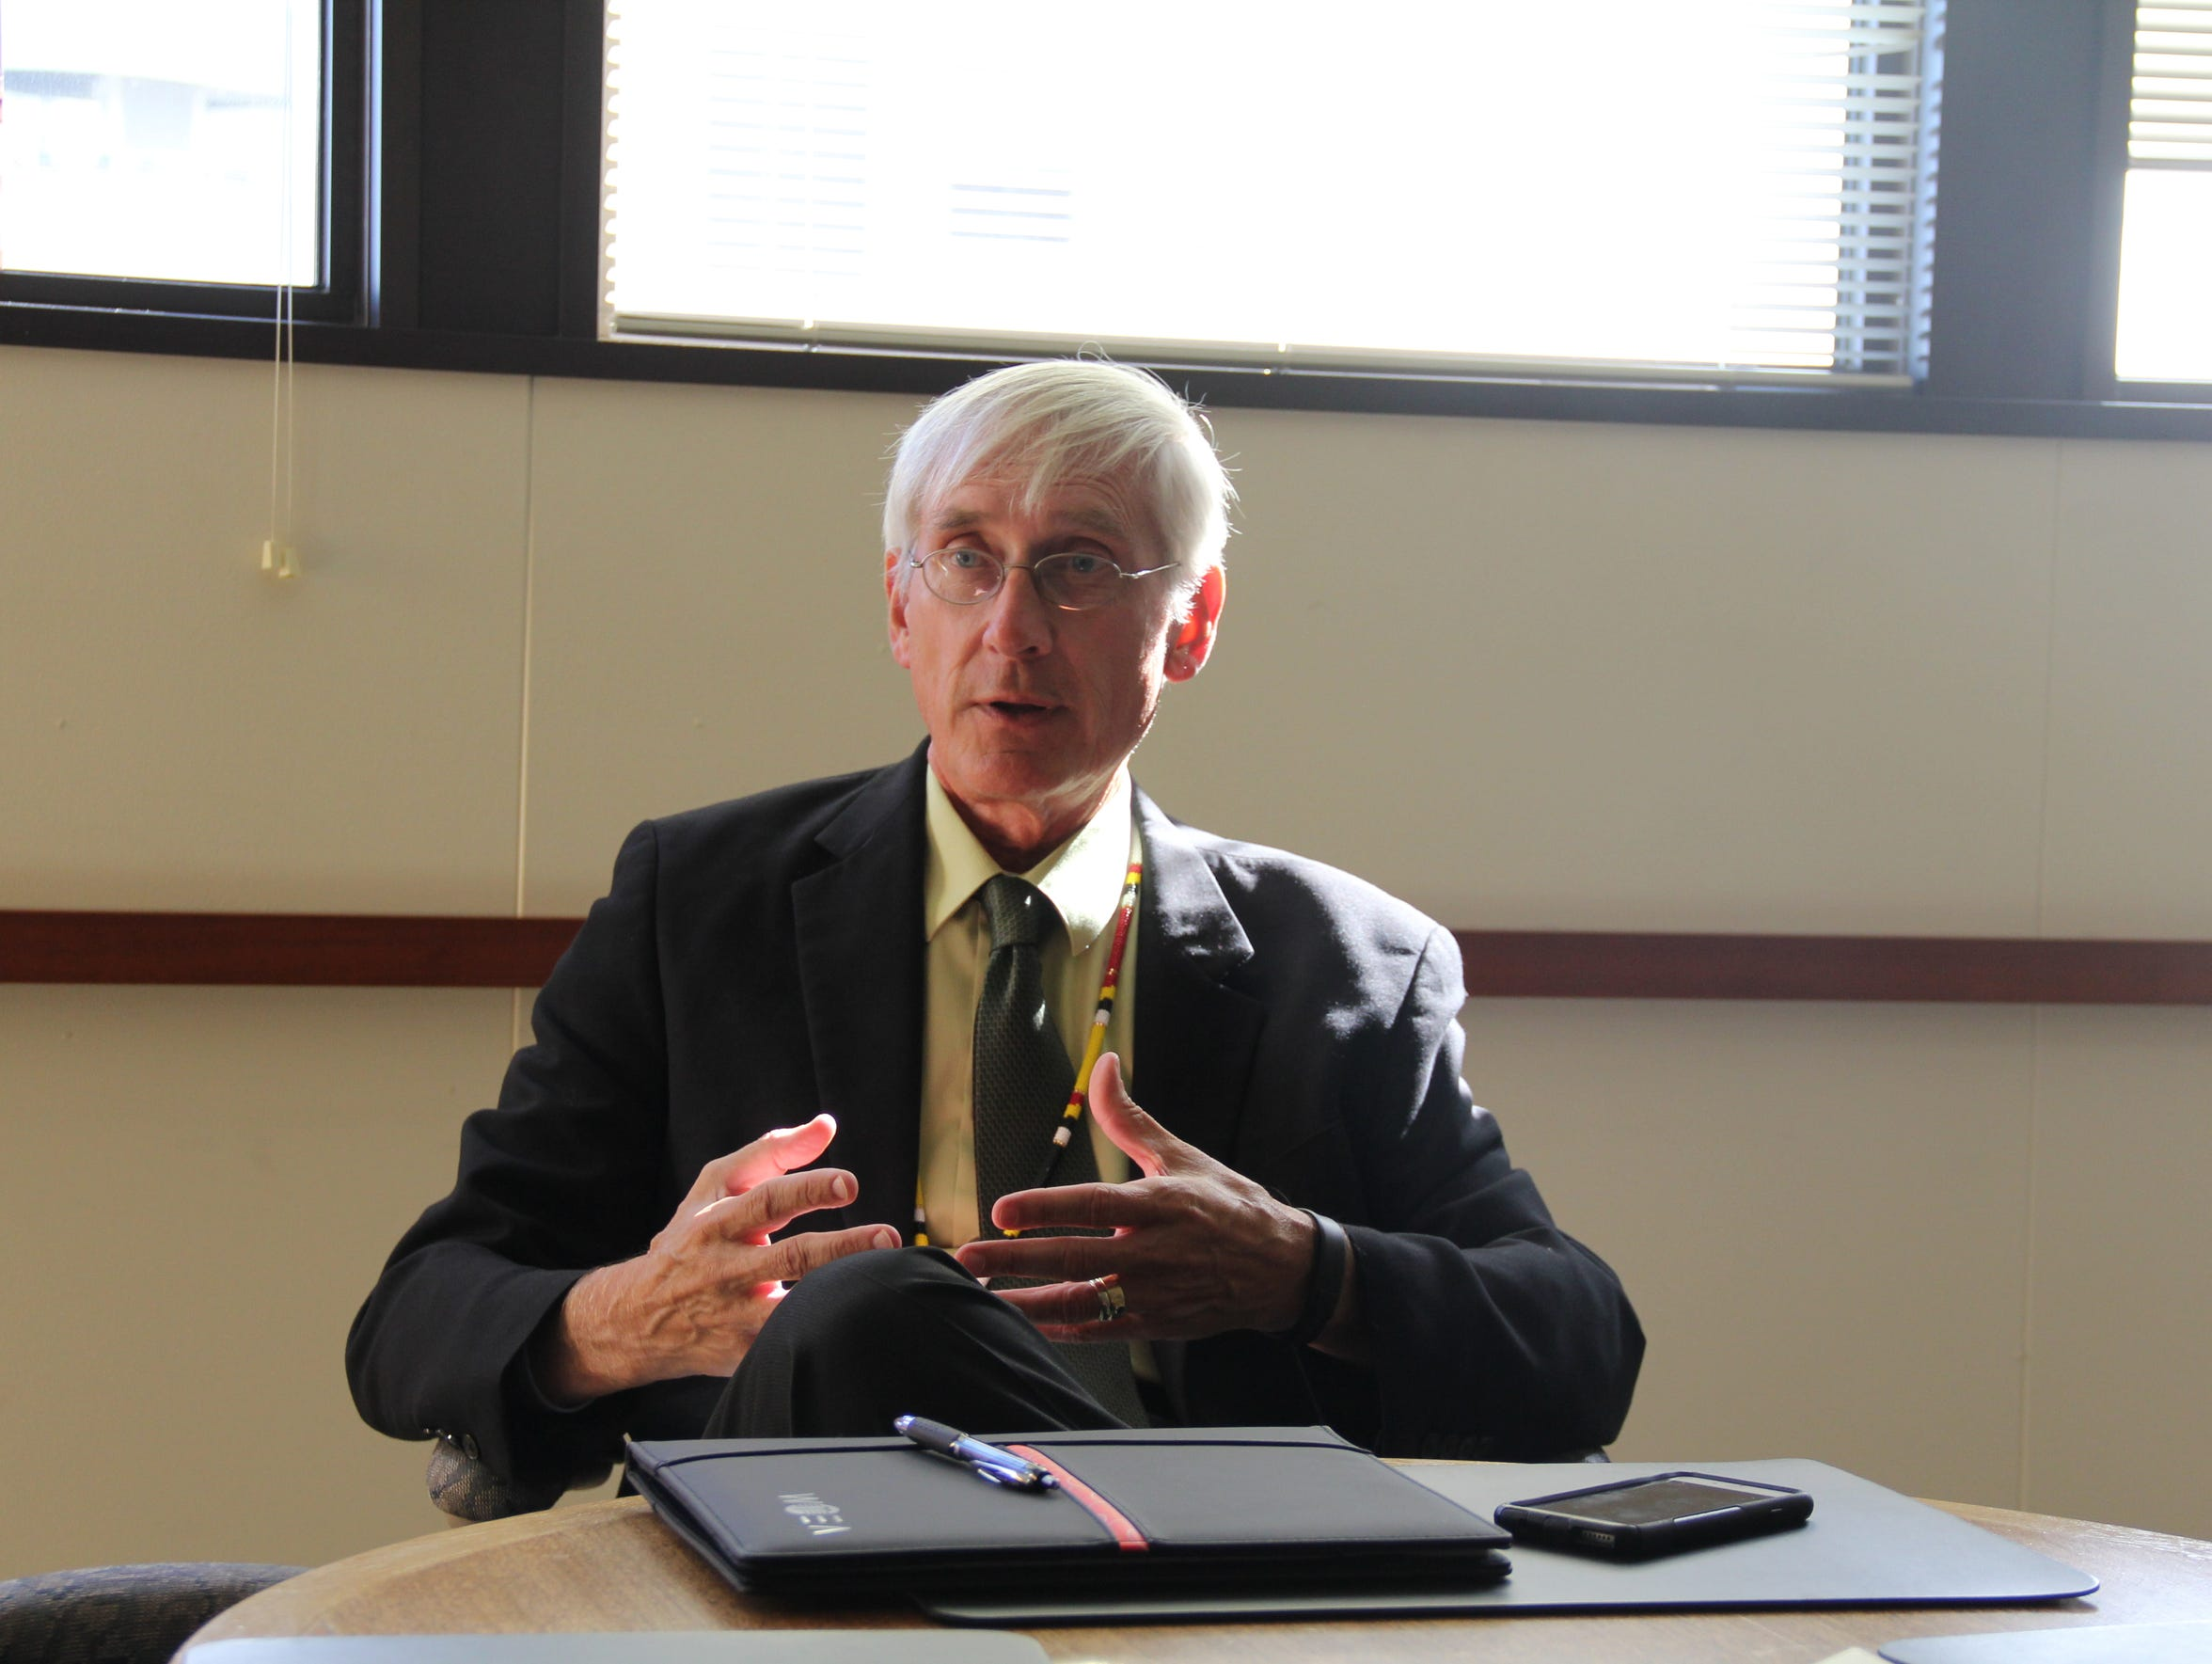 State Superintendent of Public Instruction Tony Evers,